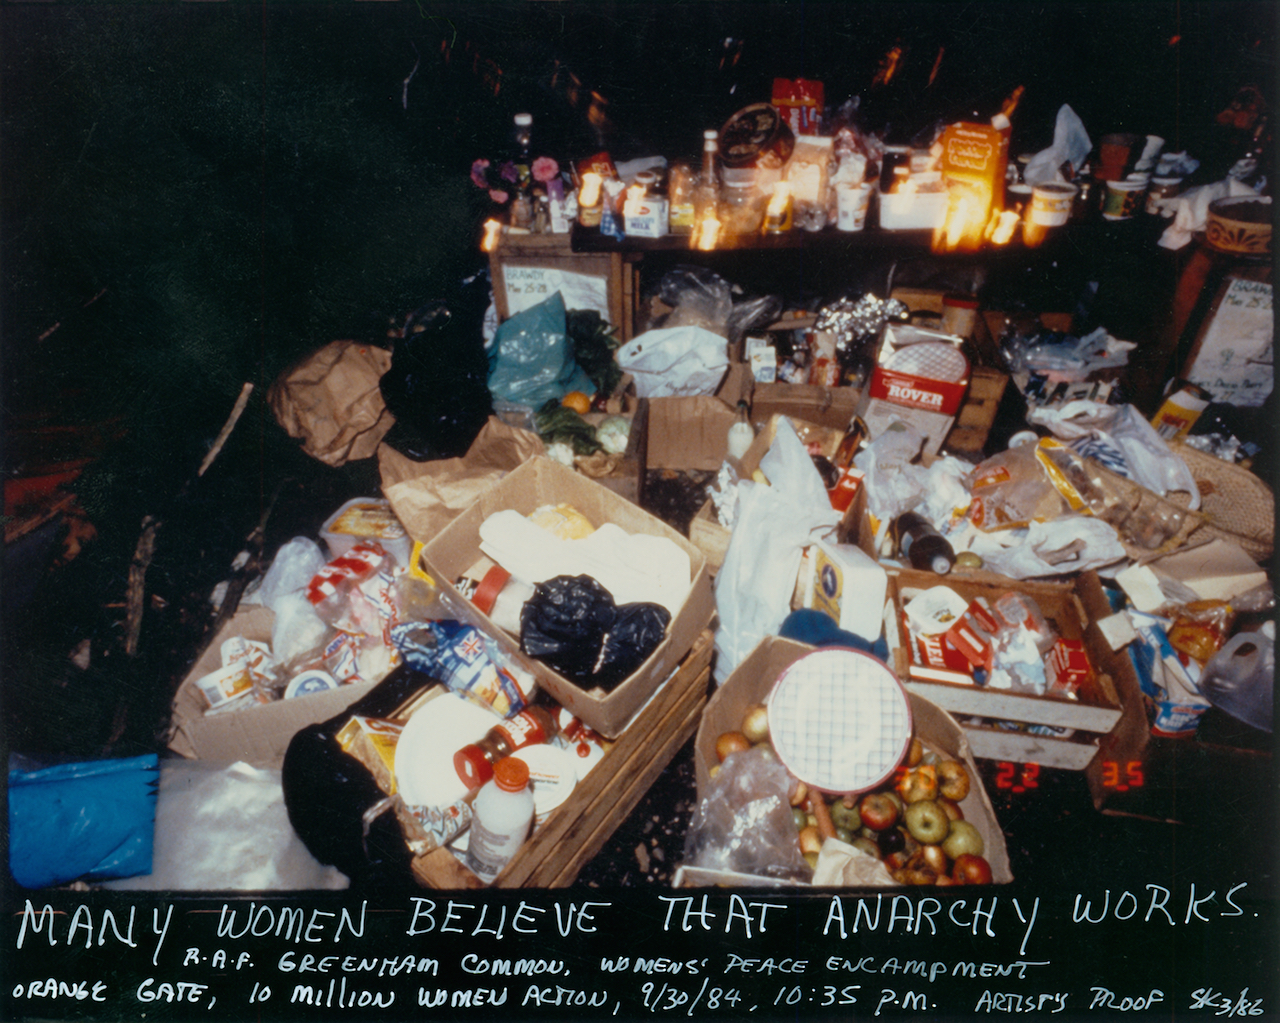 """Susan Kleckner, """"Untitled (Many Believe Anarchy Works...)"""", Greenham Common Silver Print Series (1984) (courtesy of the Susan Kleckner Archive, Special Collections and University Archives, W.E.B. DuBois Library, University of Massachusetts Amherst"""